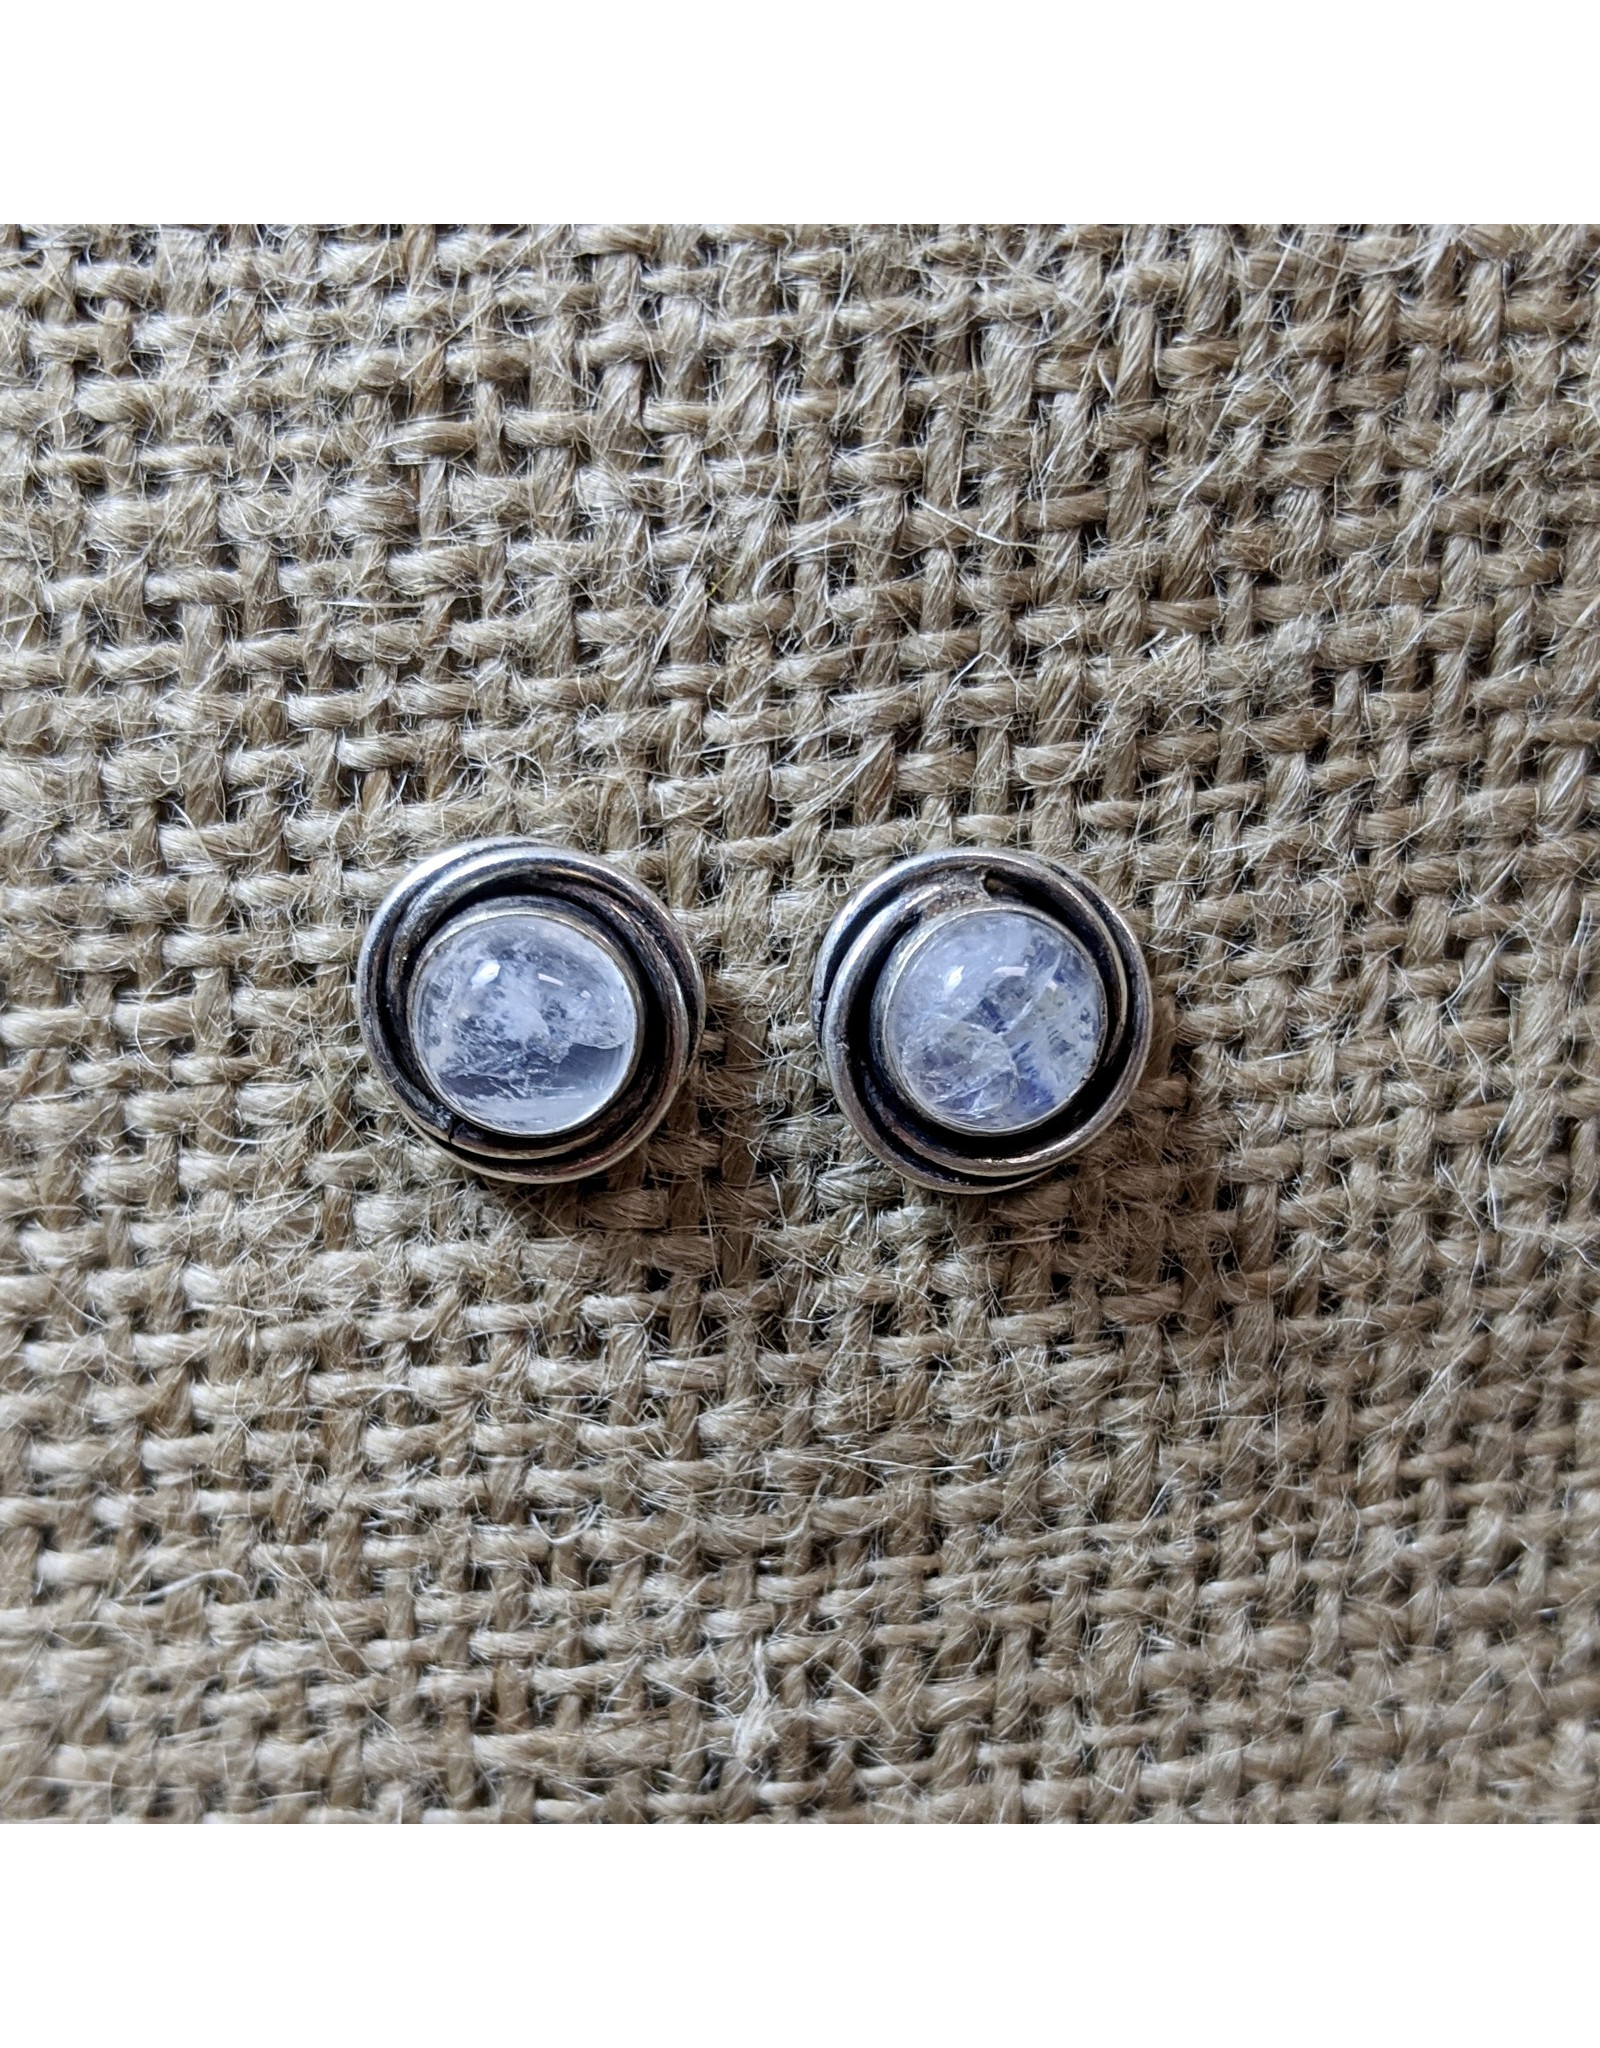 Ten Thousand Villages Silver Moonstone Earrings